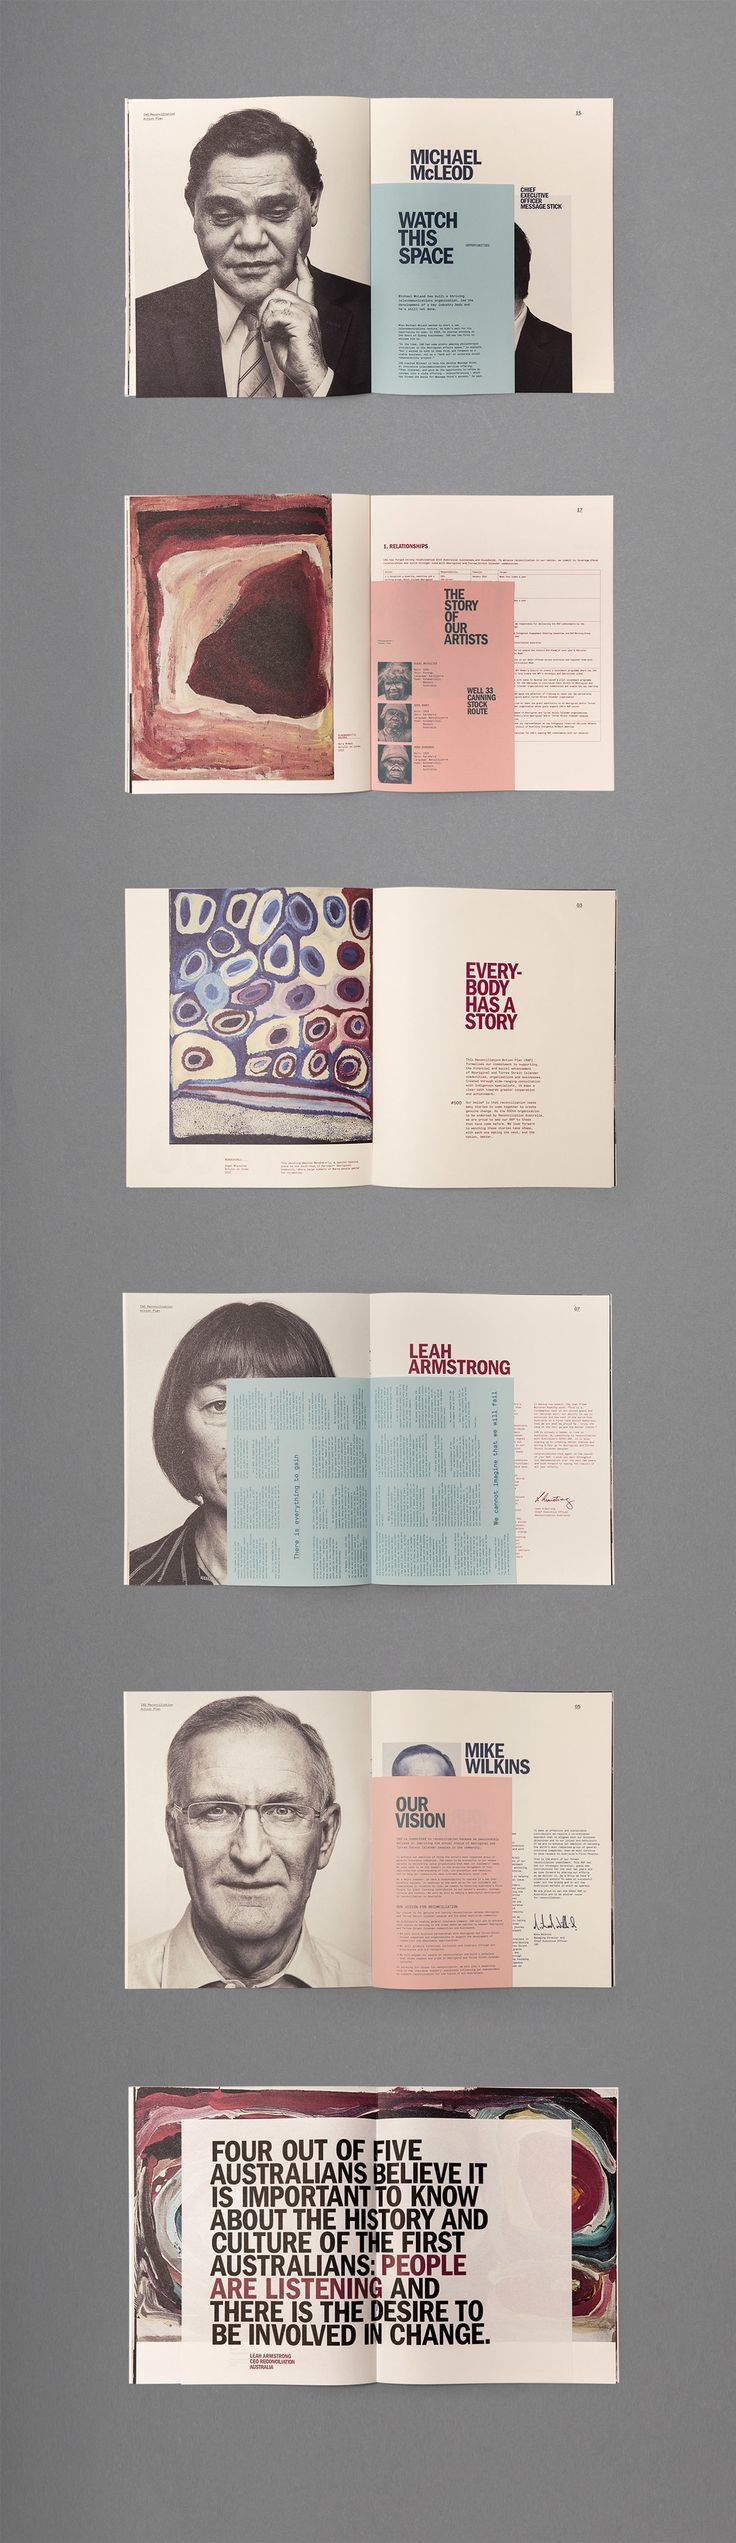 IAG Reconciliation Action Plan on Behance